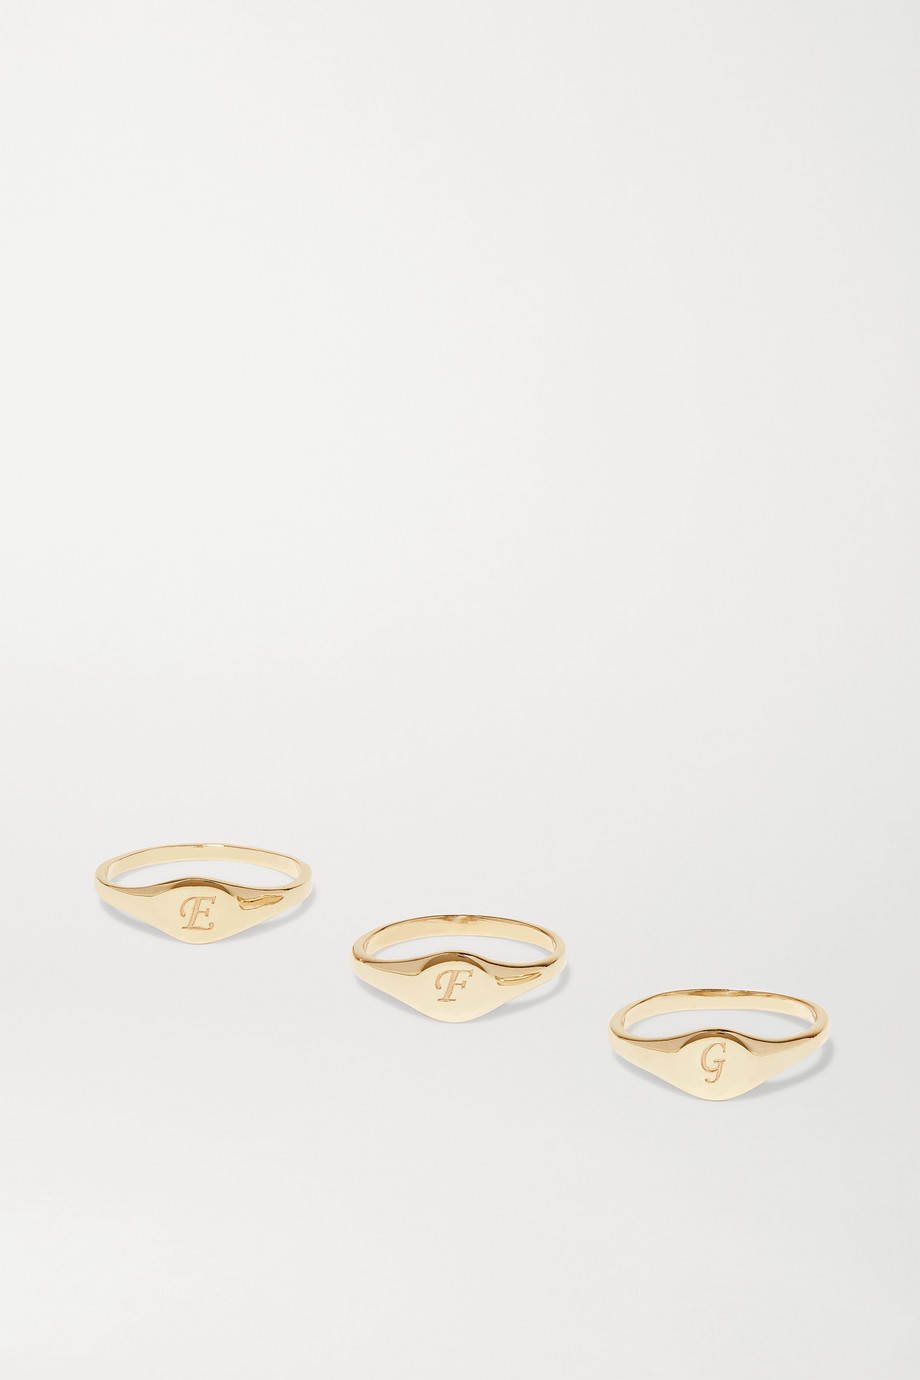 STONE AND STRAND Alphabet Mini Pinky gold ring